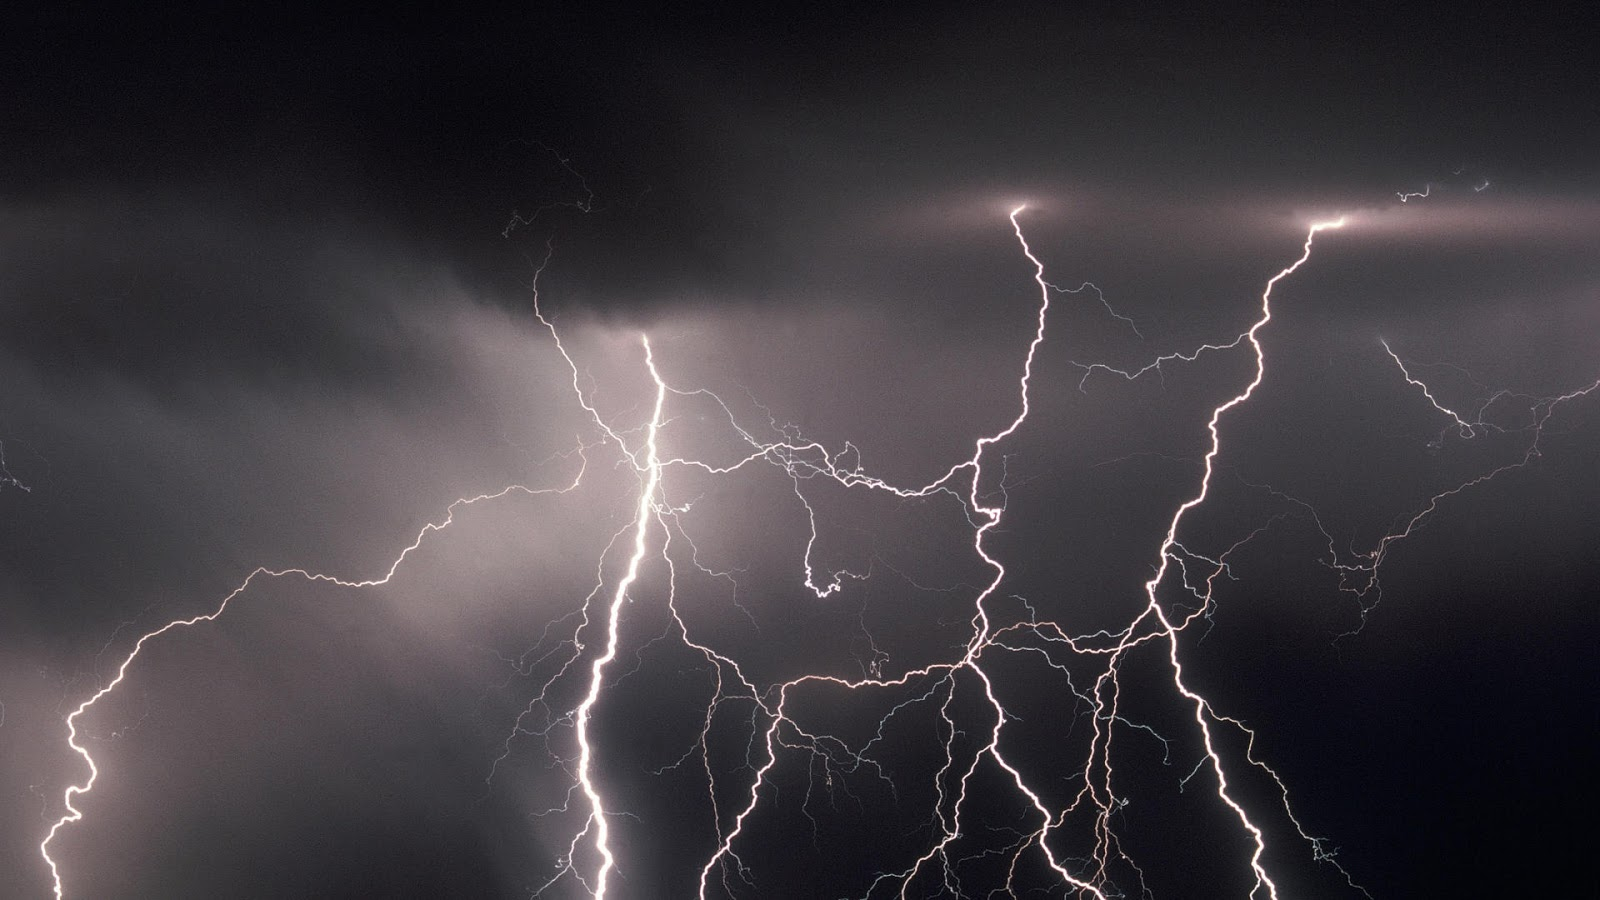 Sky lightning wallpapers hd free wallpaper for In wallpaper